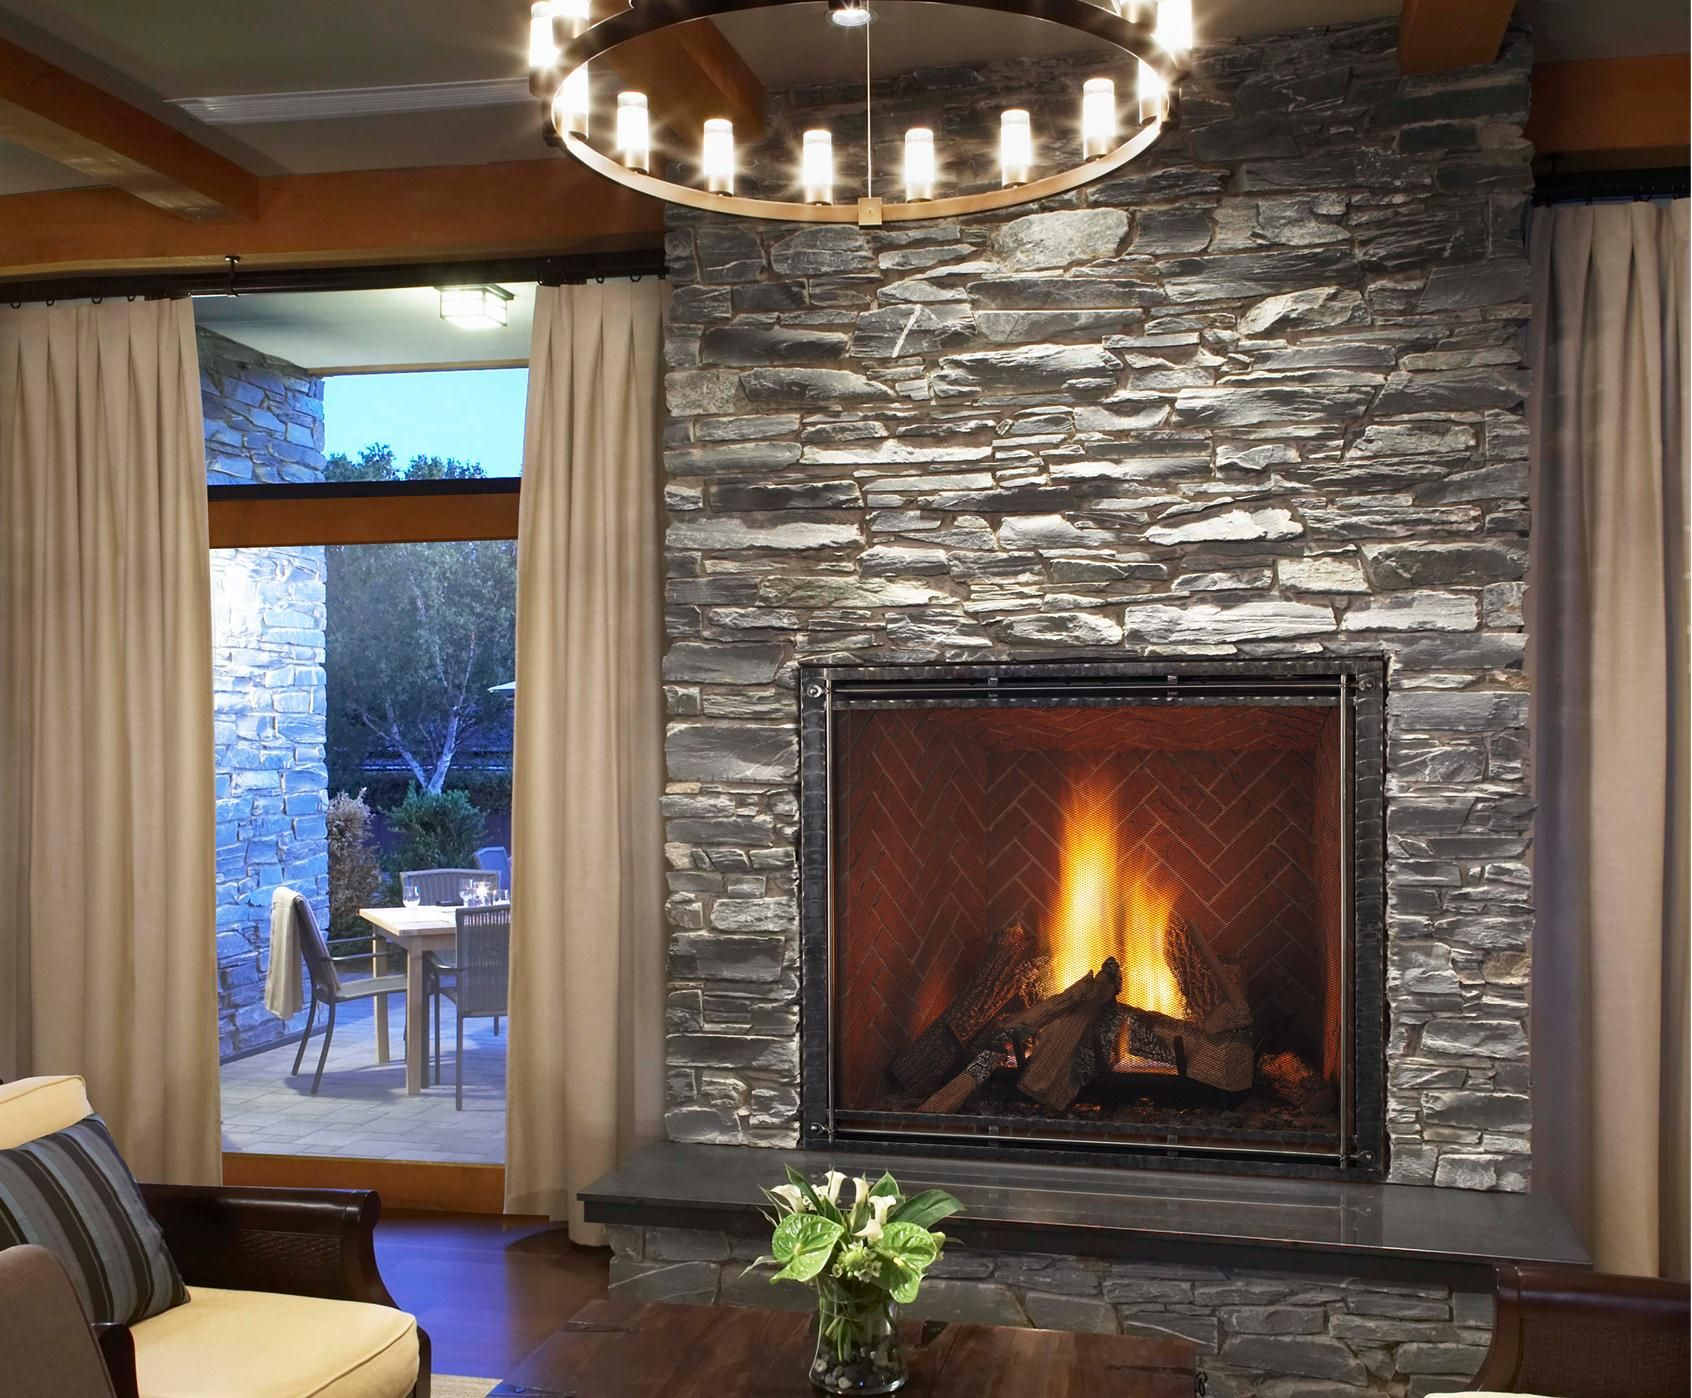 stone fireplaces designs stone fireplaces are one of the hottest modern design trends - Stone Fireplace Design Ideas